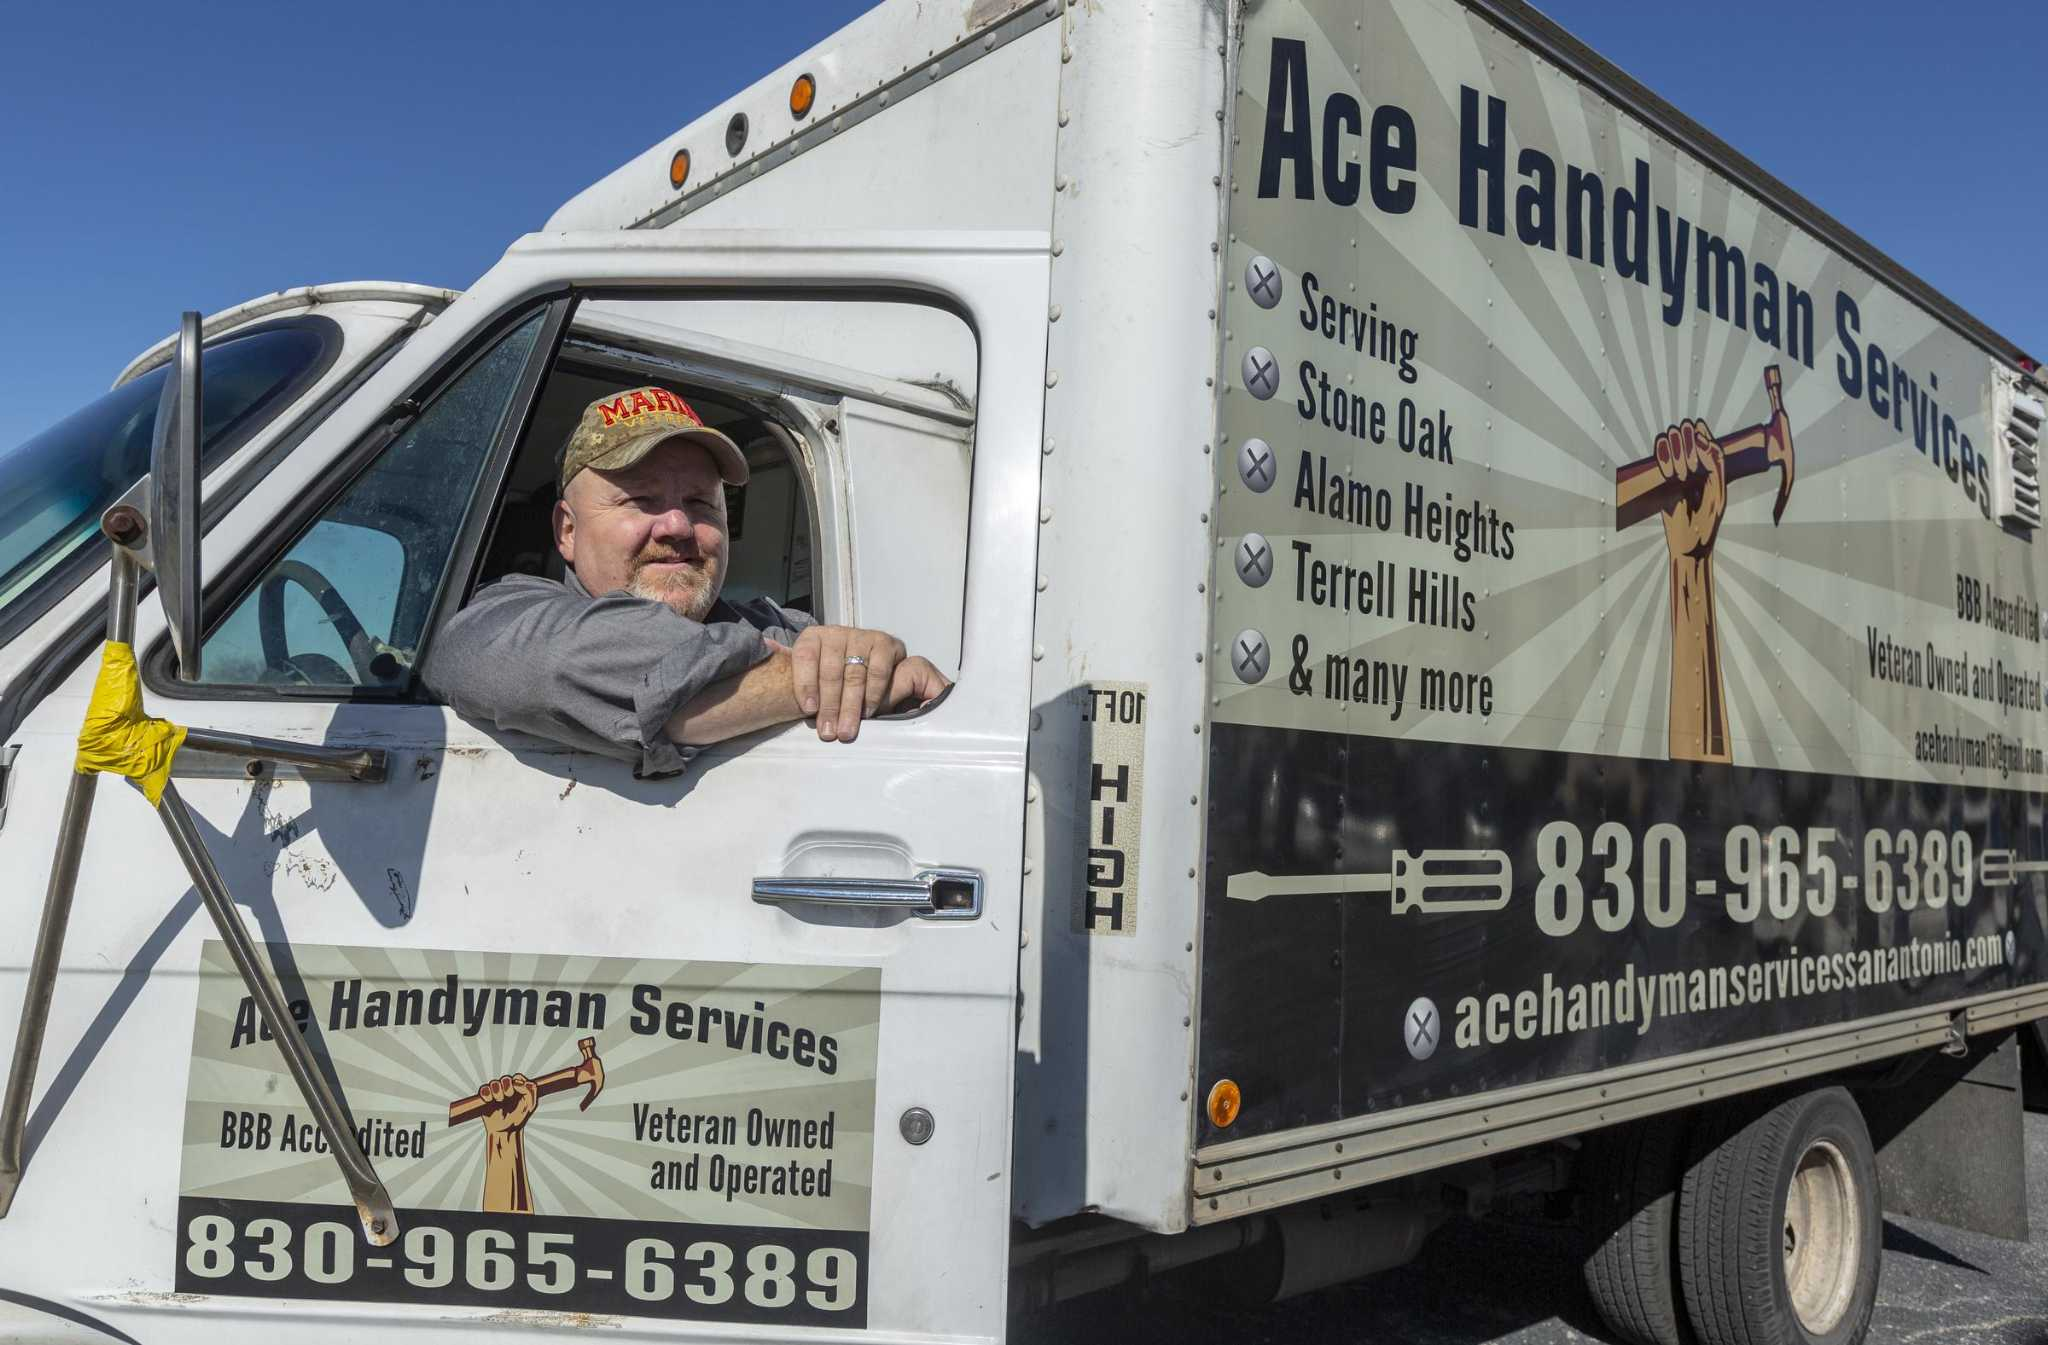 Who S Going To Fix This San Antonio Handyman Battles Ace Hardware Over New Venture S Name